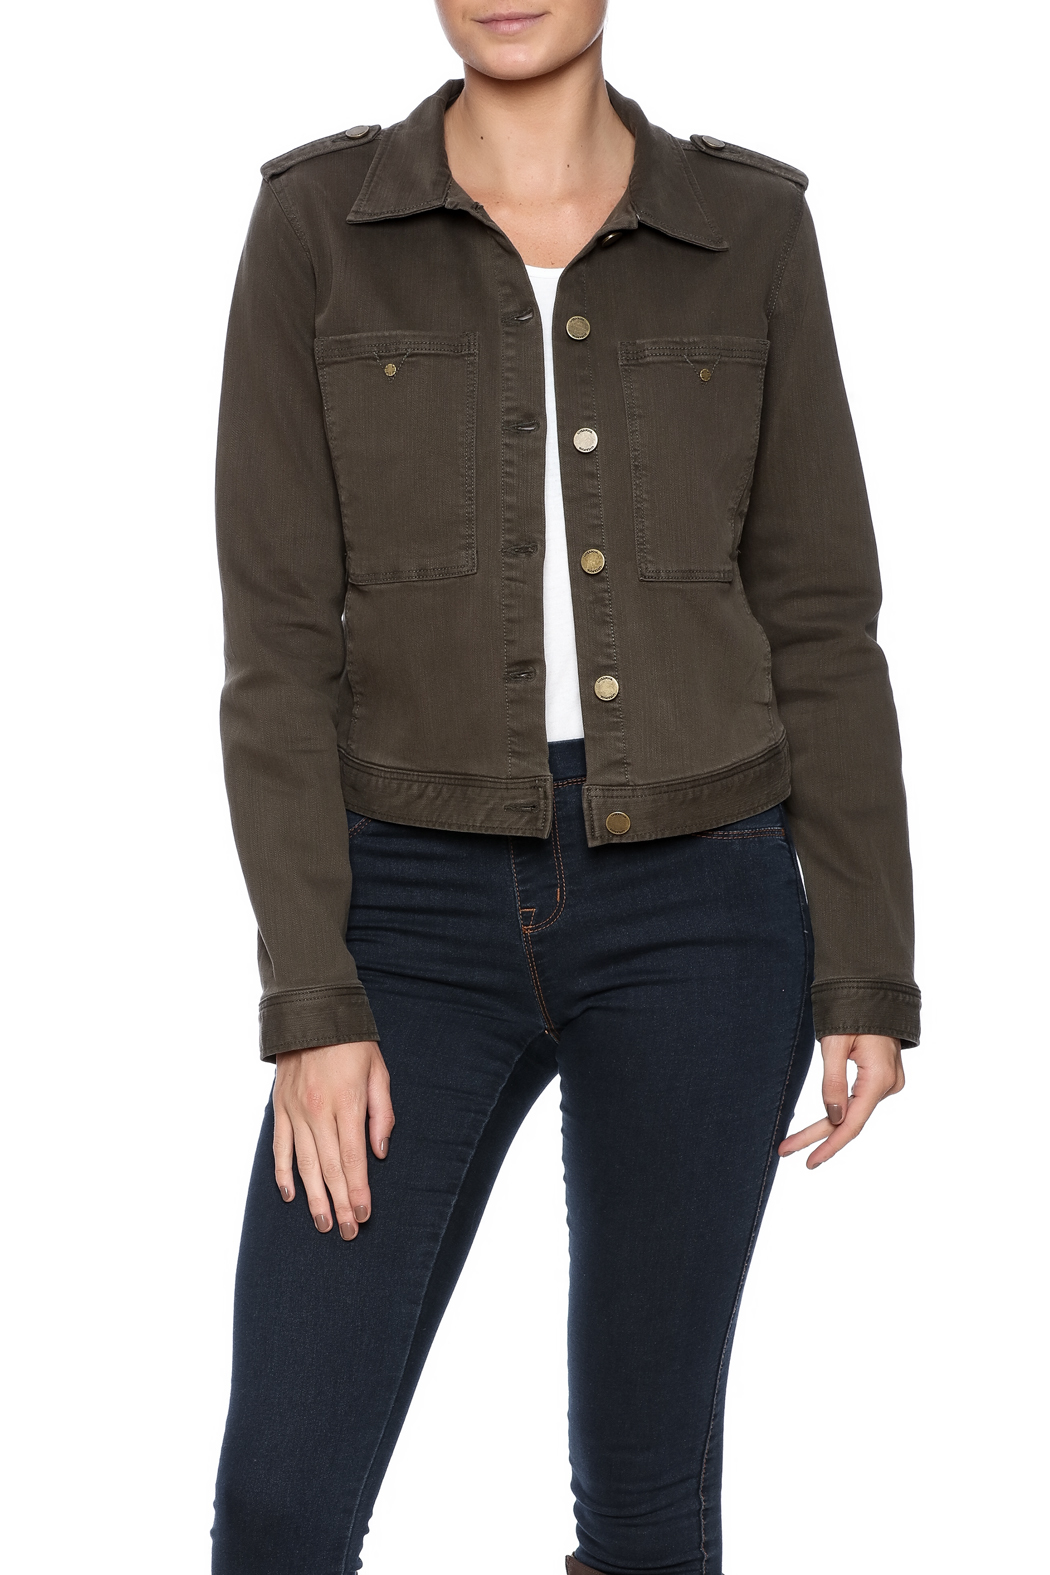 Liverpool Jean Company Cargo Jacket - Front Cropped Image